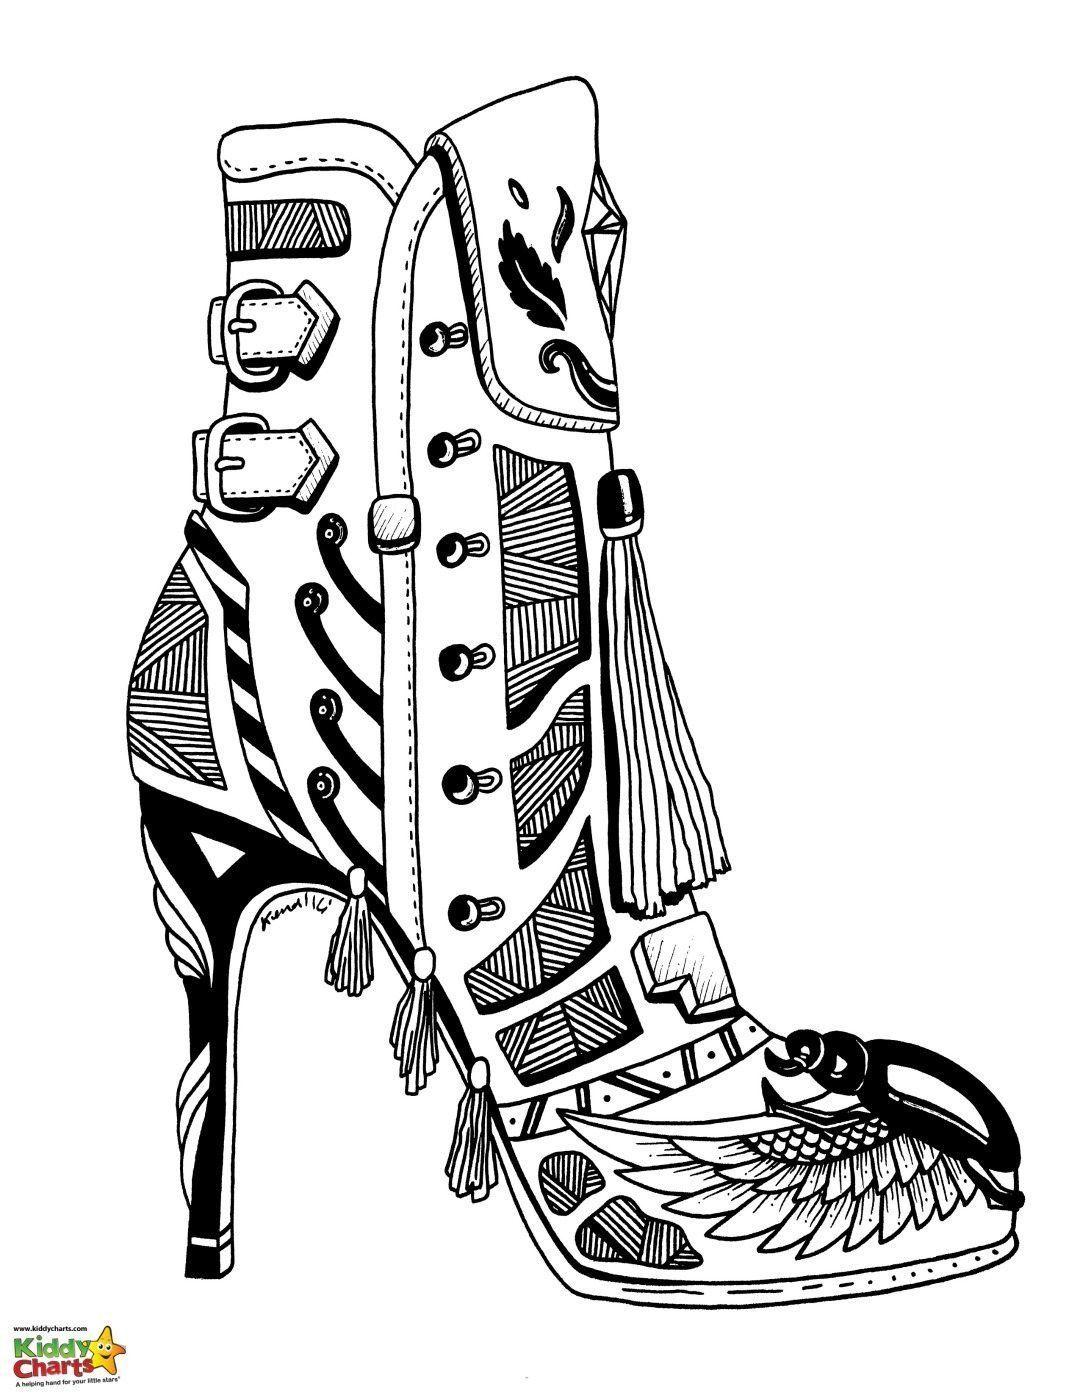 High Heel Coloring Page High Heel Shoe Coloring Pages For Adults And Kids High Heel Coloring Page High Hee In 2020 Shoes Drawing Jordan Coloring Book Coloring Pages